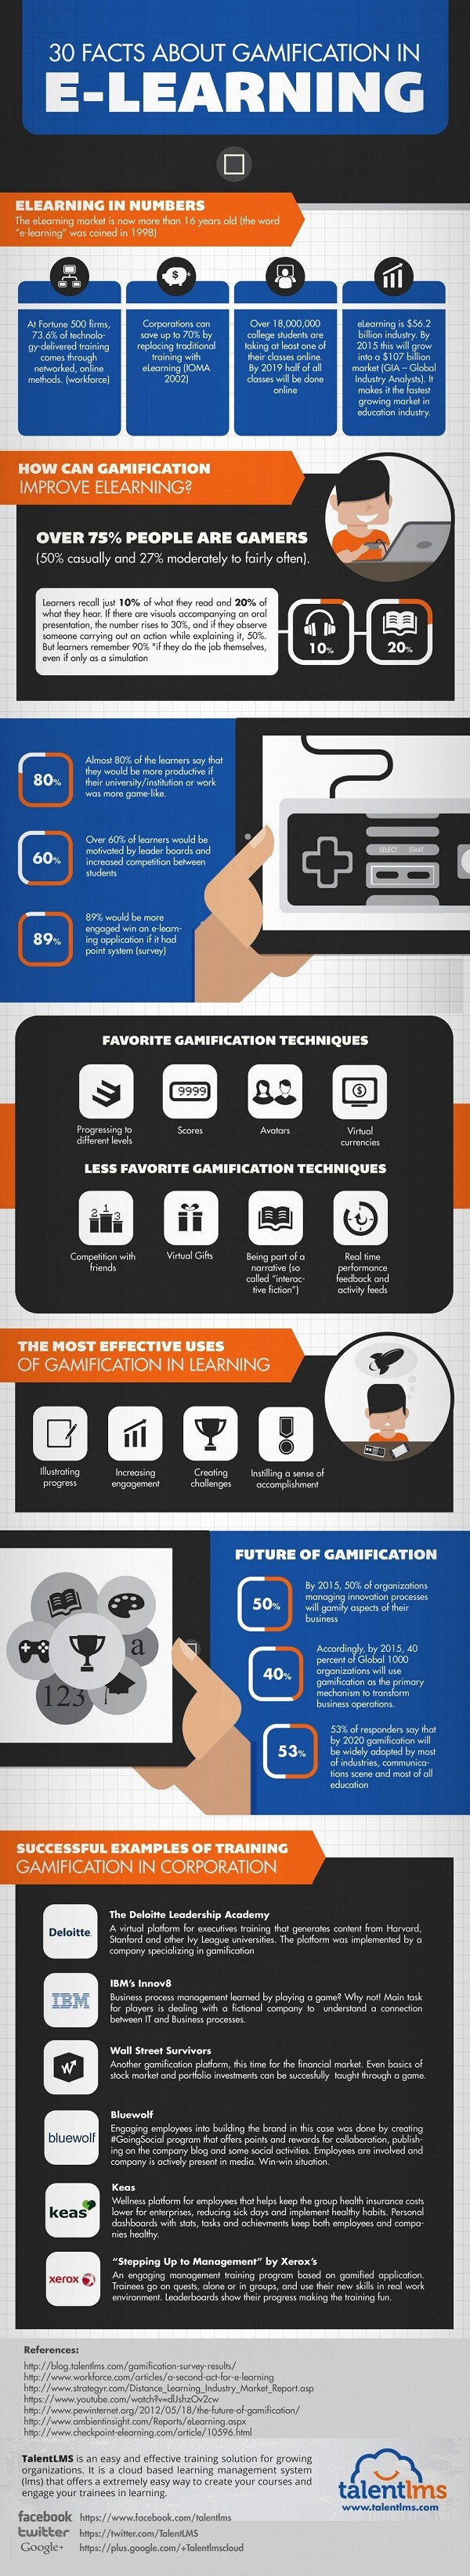 12Gamification-in-eLearning-Infographic2-1000x5482.jpg